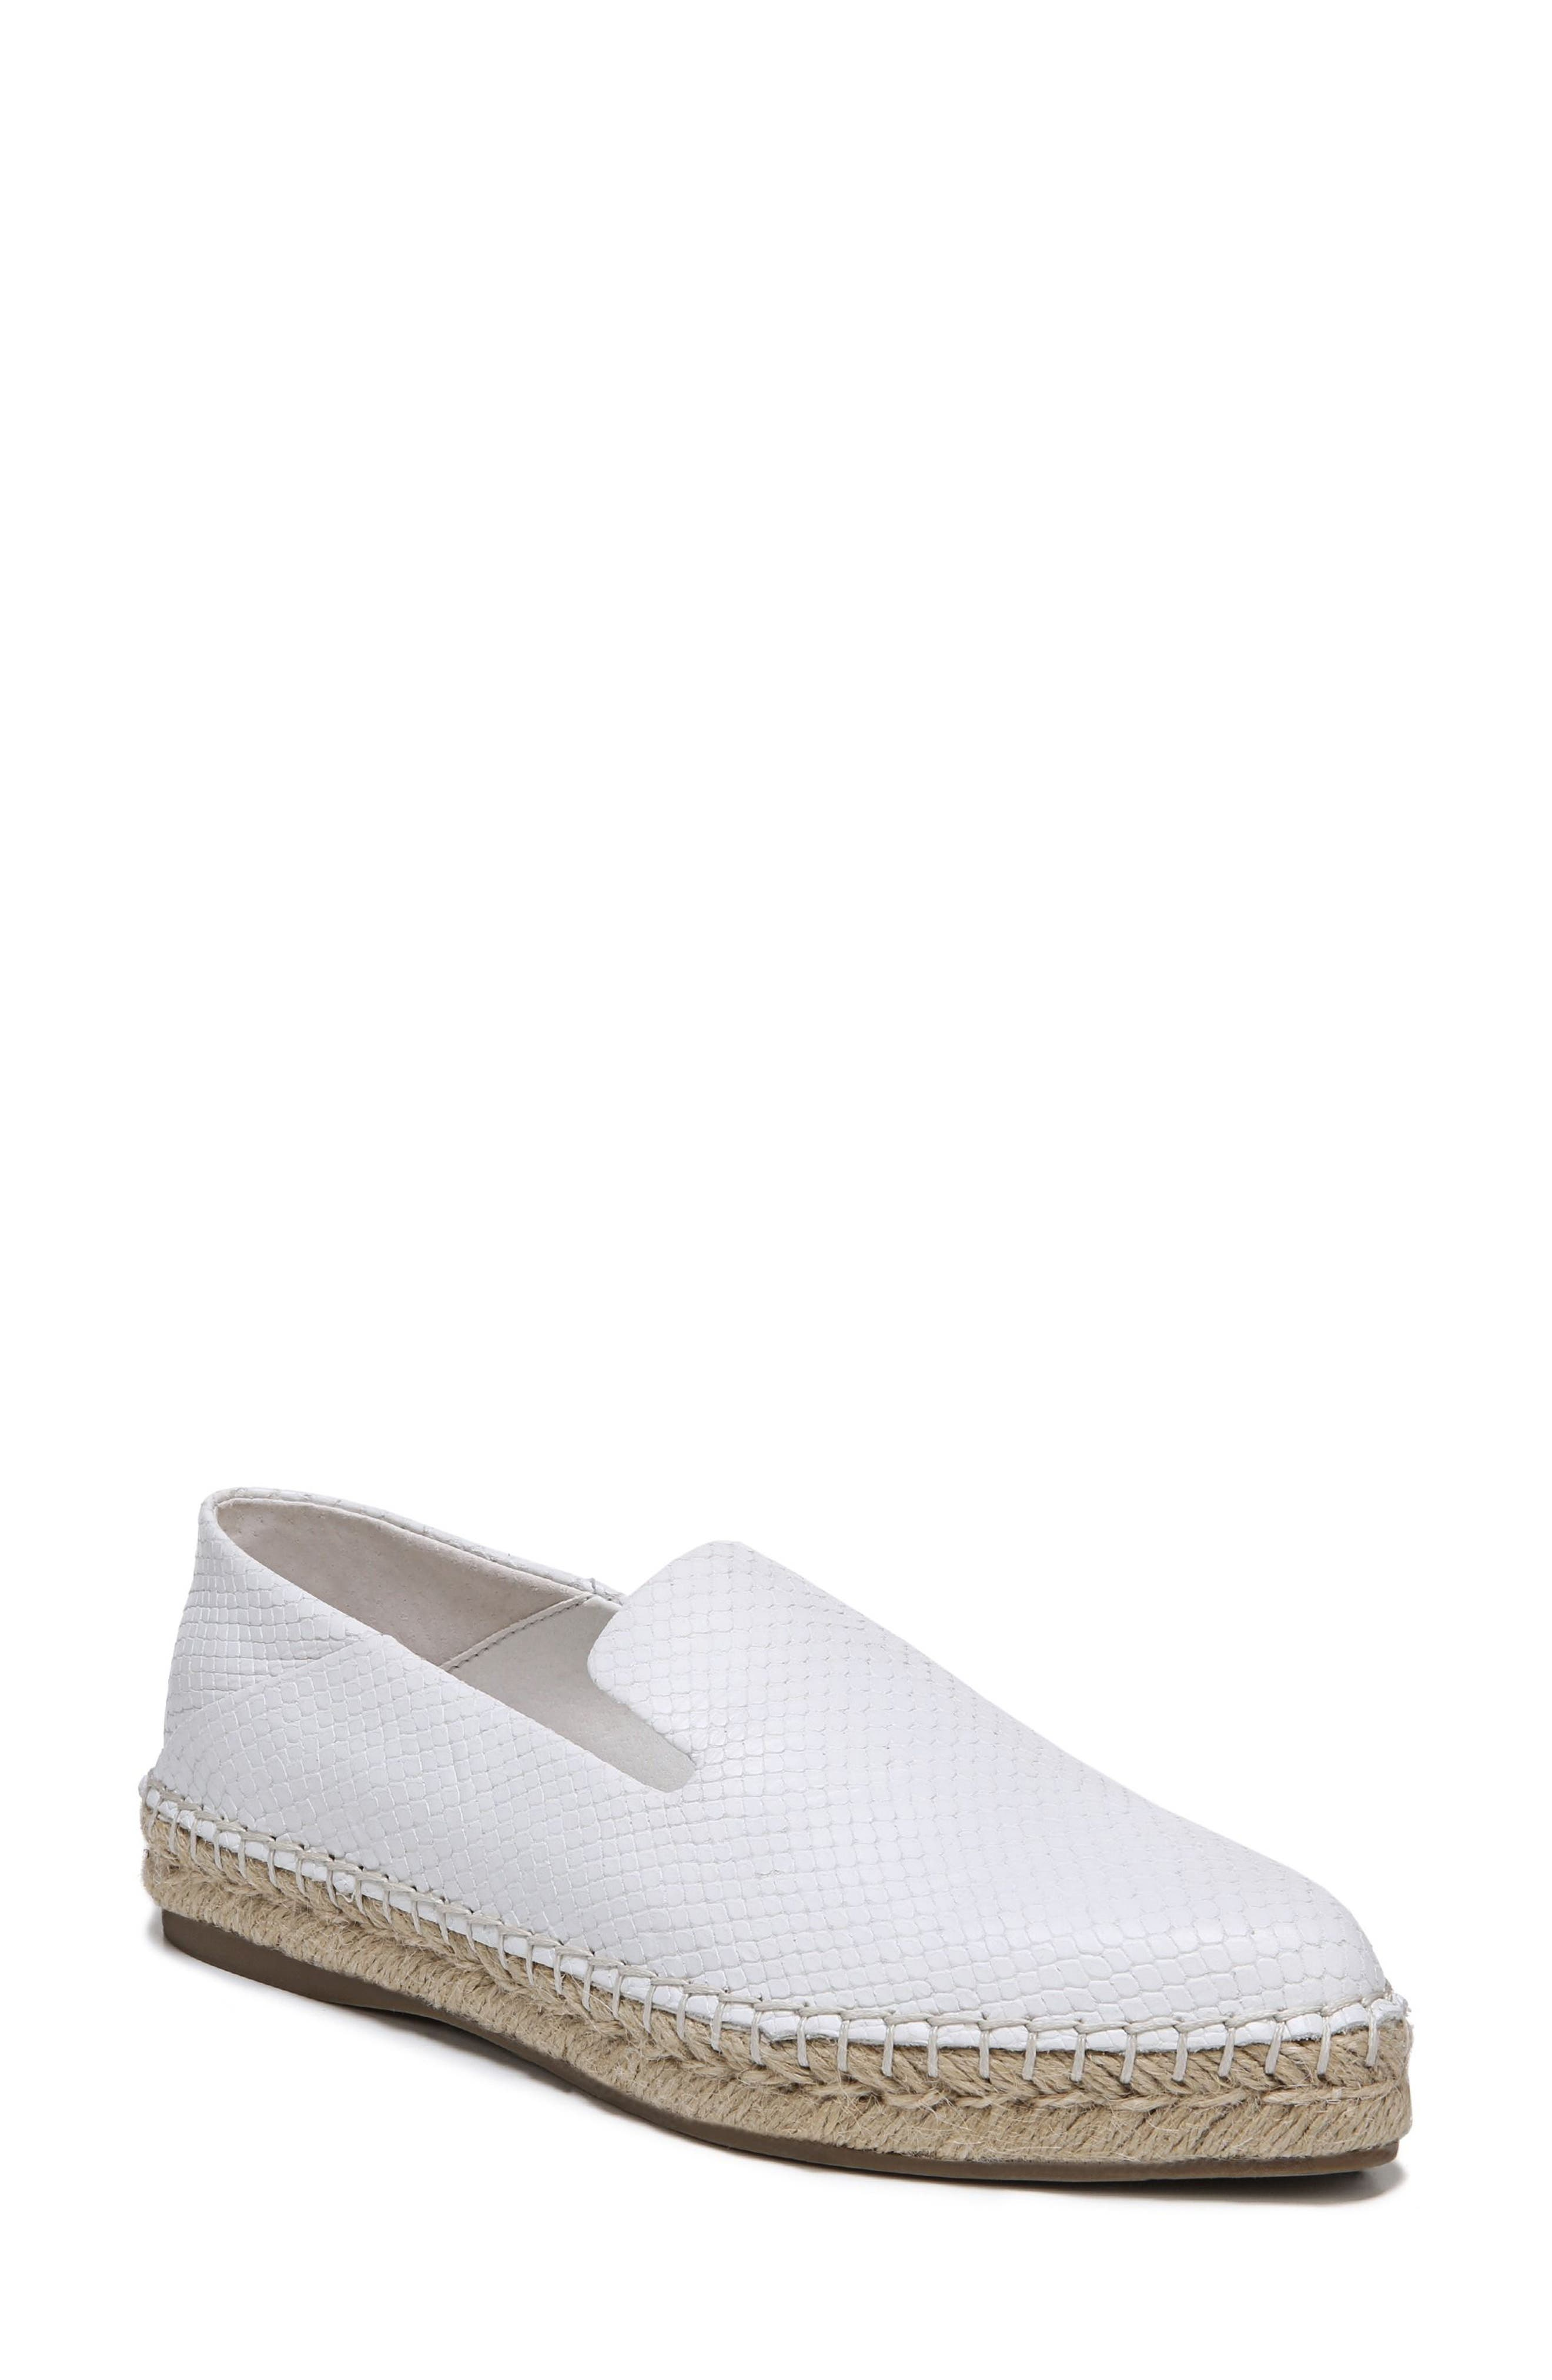 Eviana Espadrille Loafer,                             Main thumbnail 1, color,                             Blanca Snake Print Leather